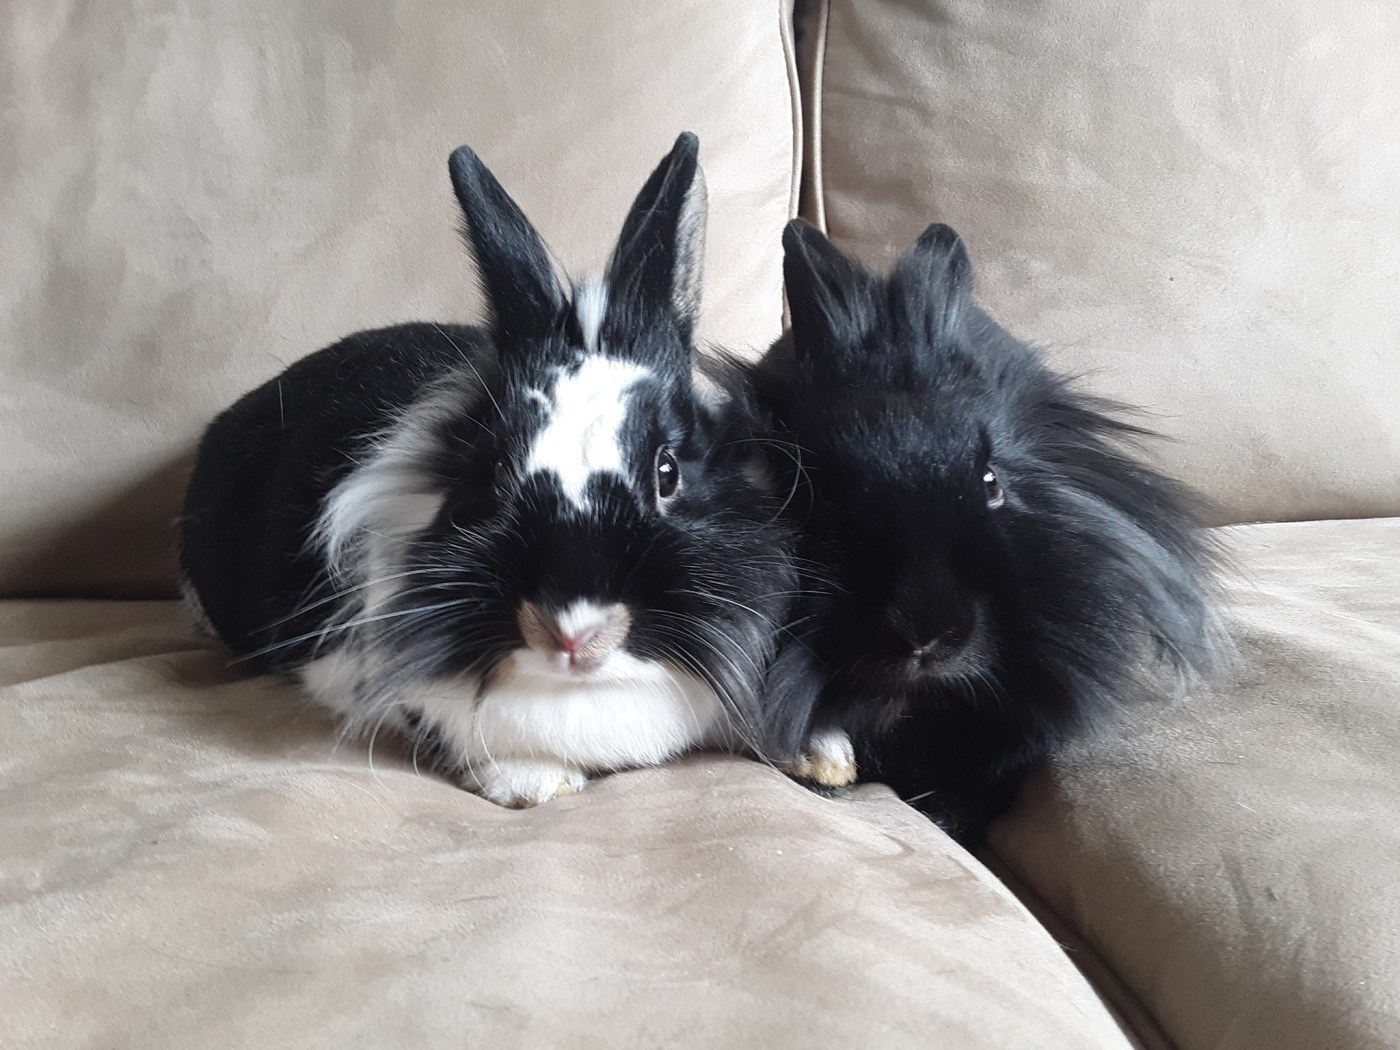 Two black and white bunnies sit on a couch.